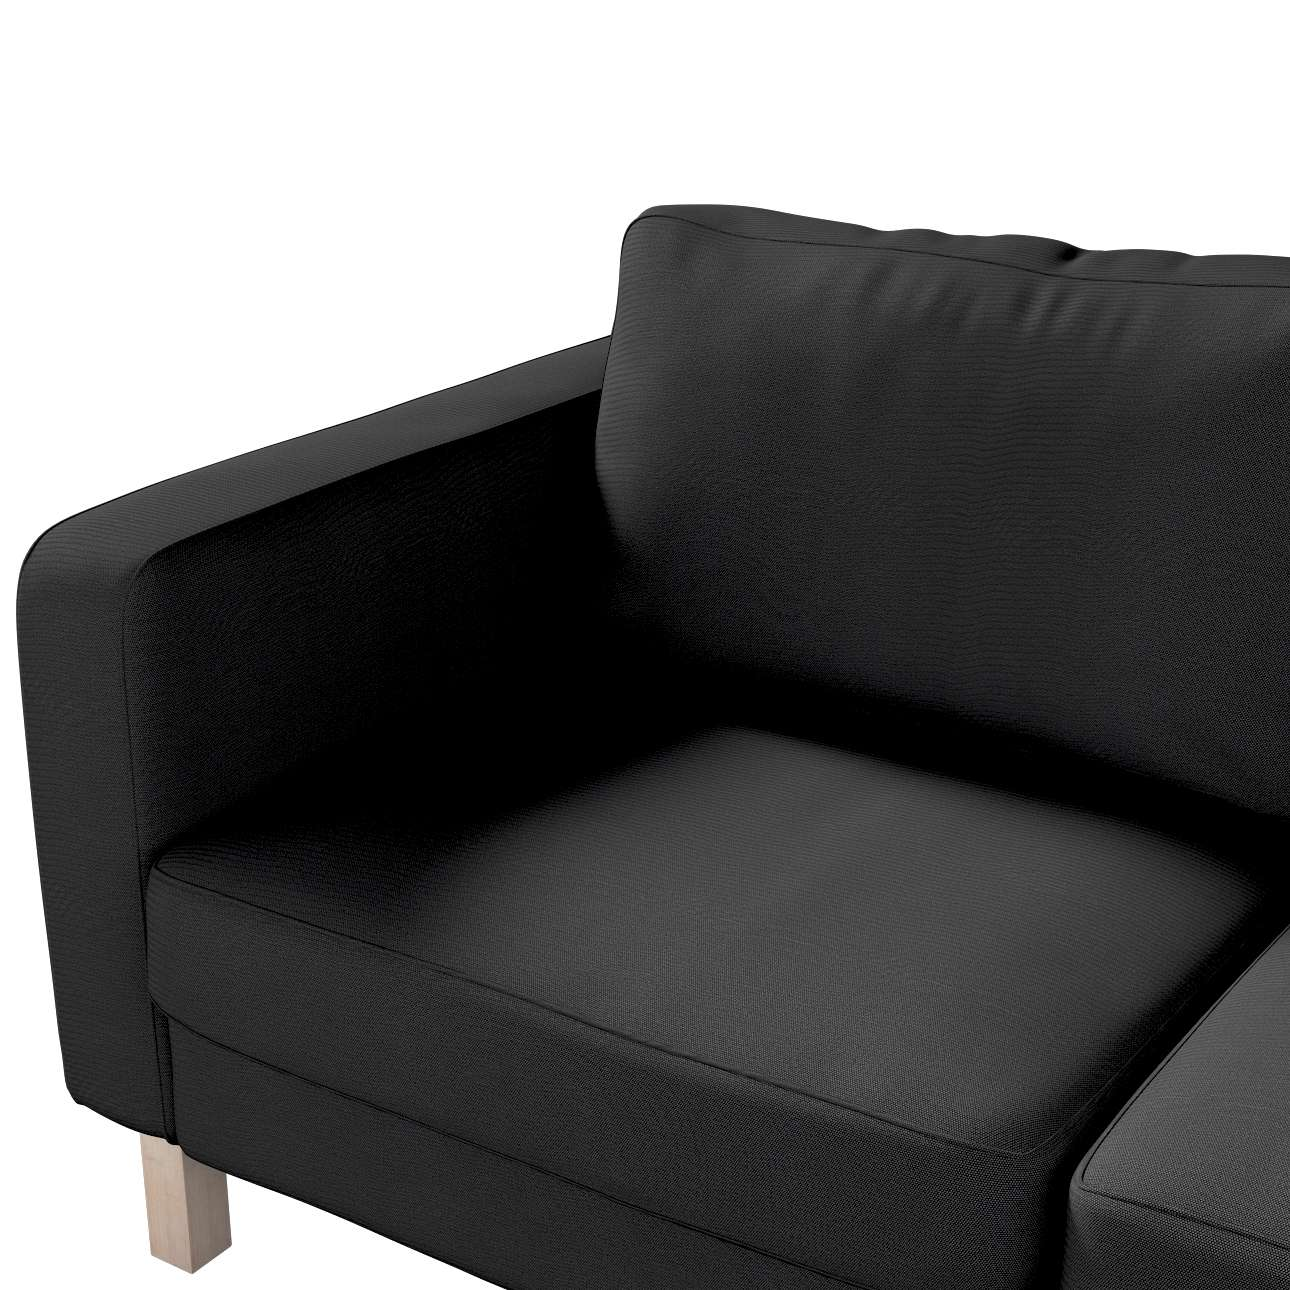 Karlstad 2-seater sofa cover in collection Etna, fabric: 705-00